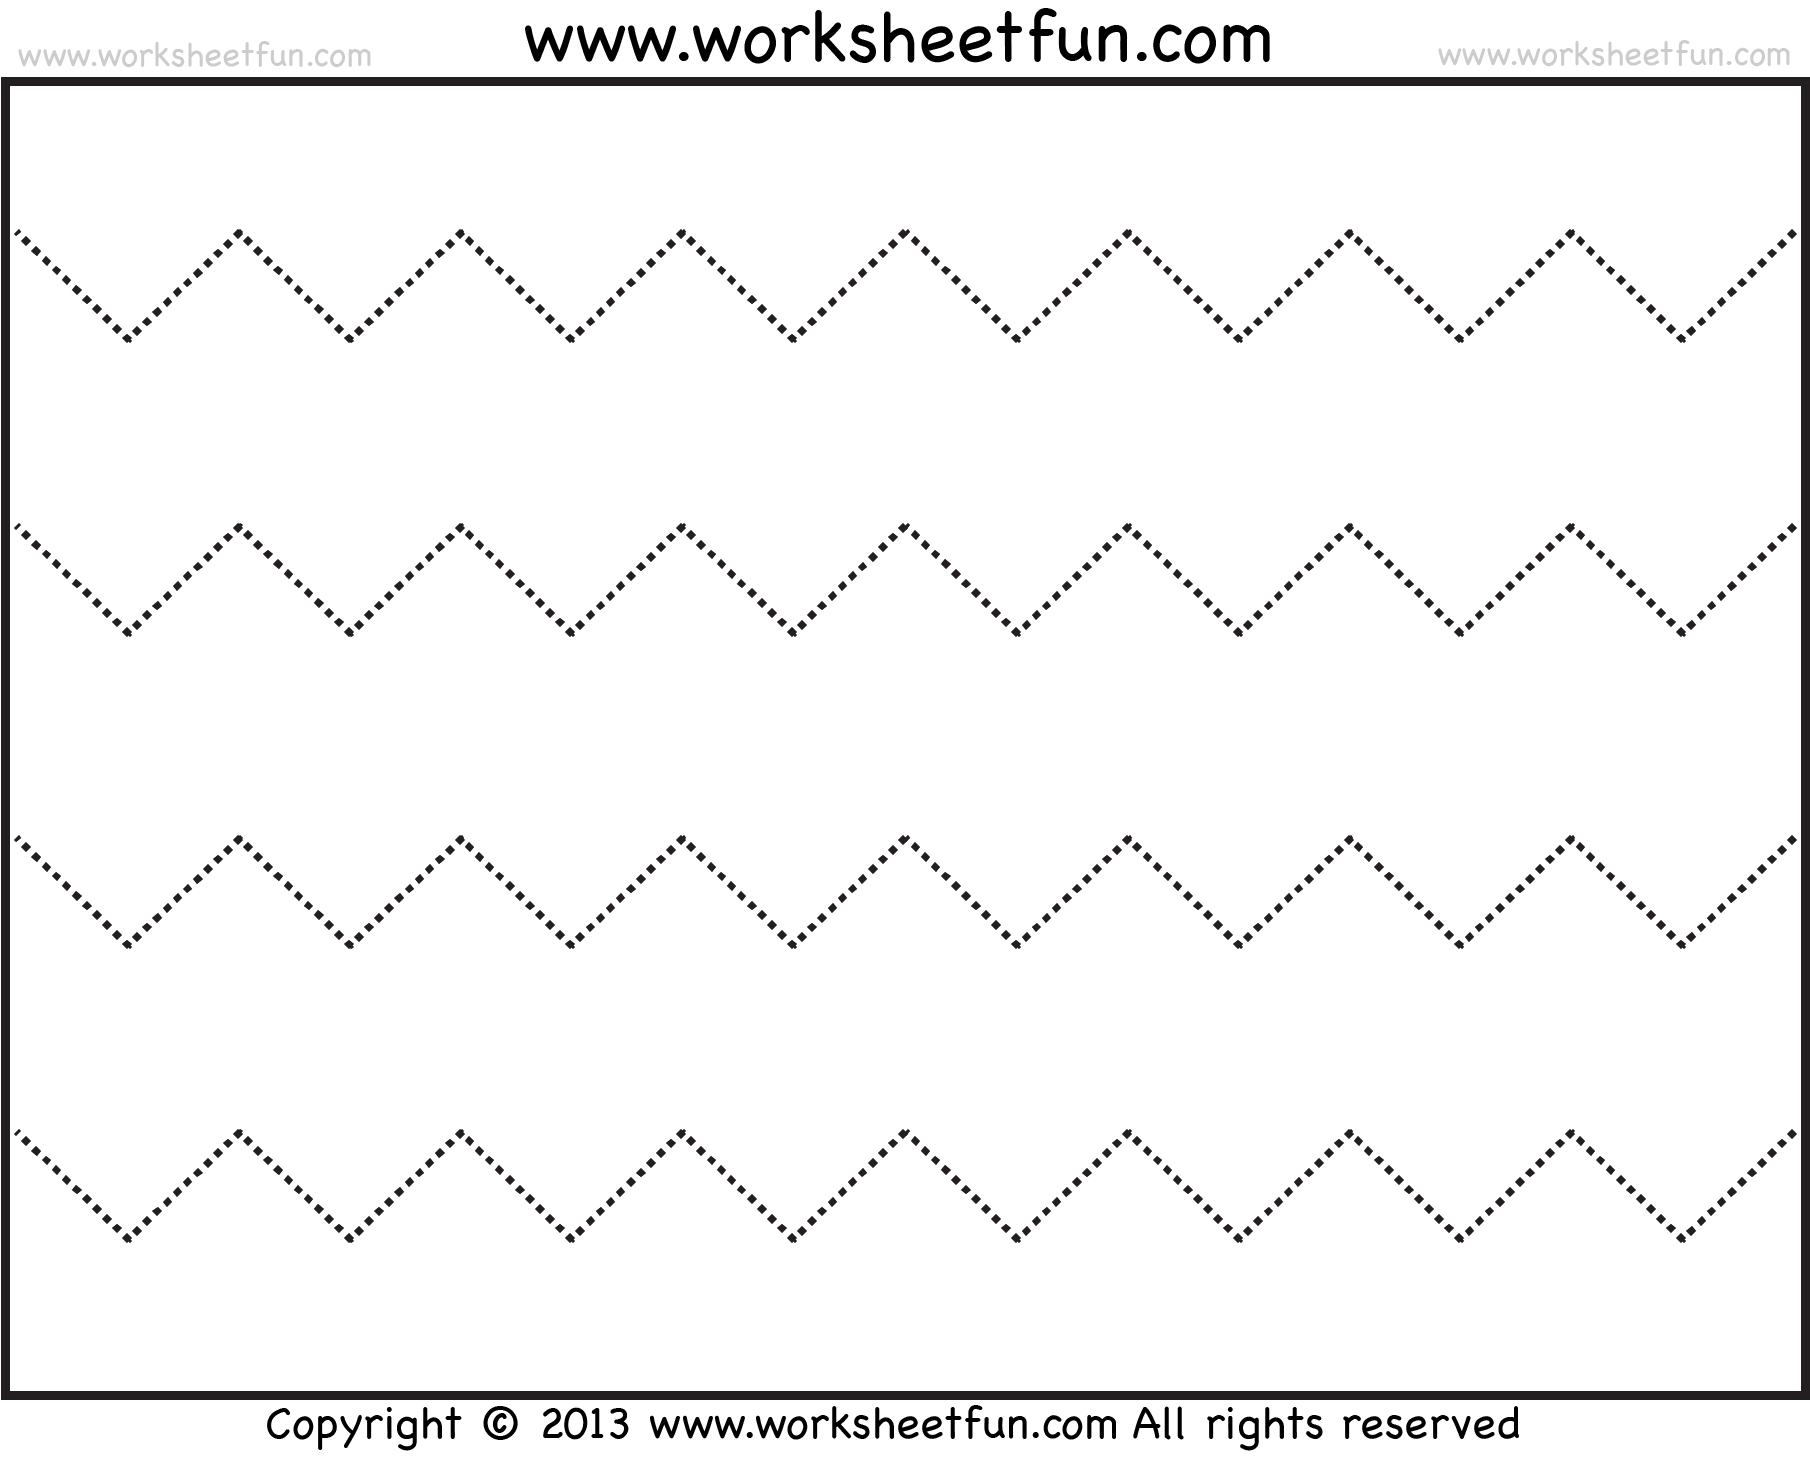 Tally Mark Worksheet More Less